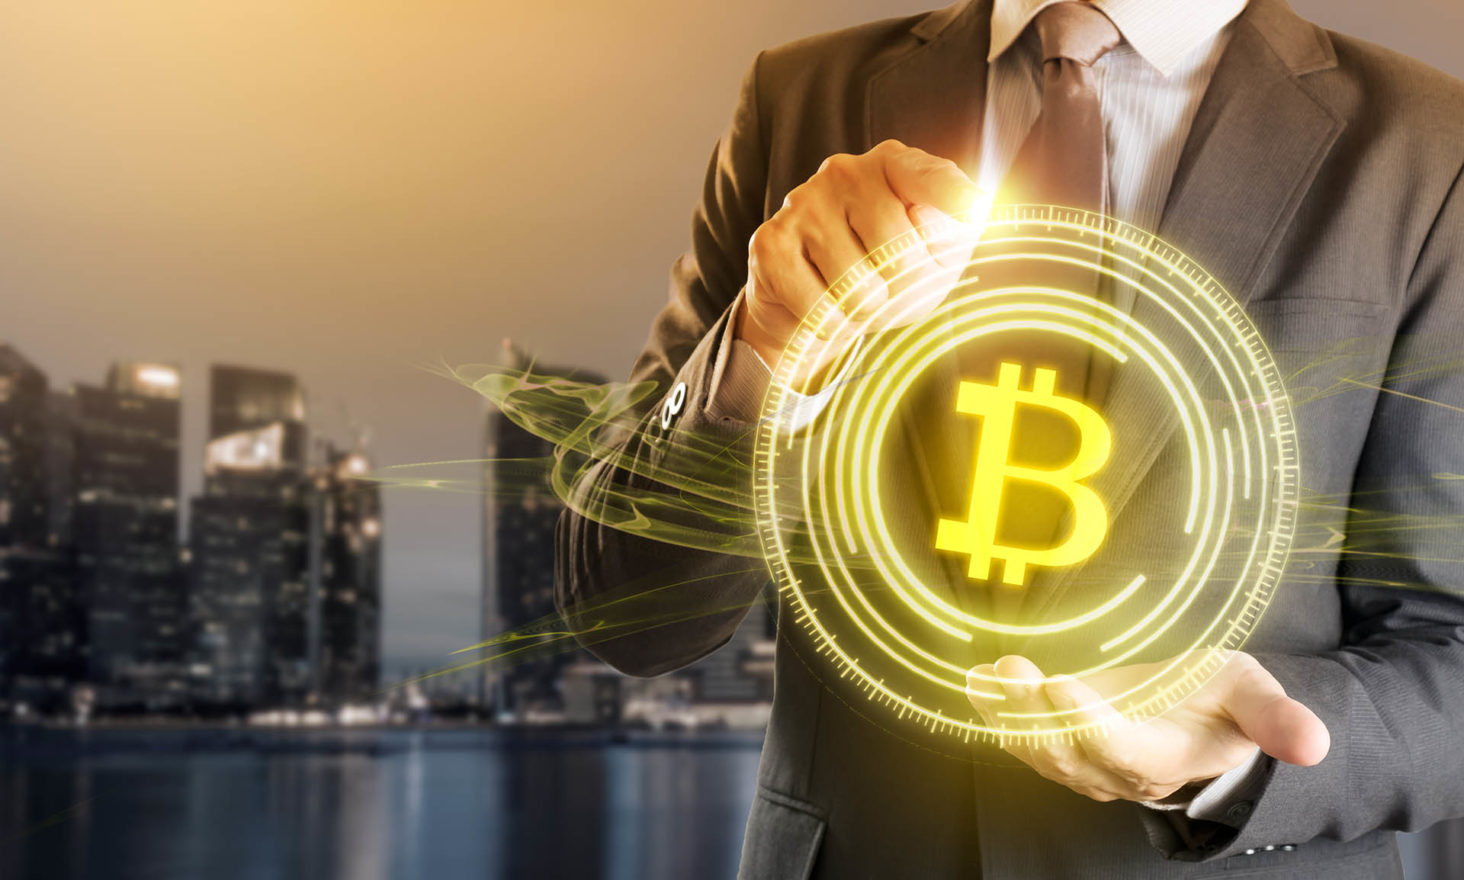 Bitcoin Experts: Forget Price, Look At Investment When Weighing Success